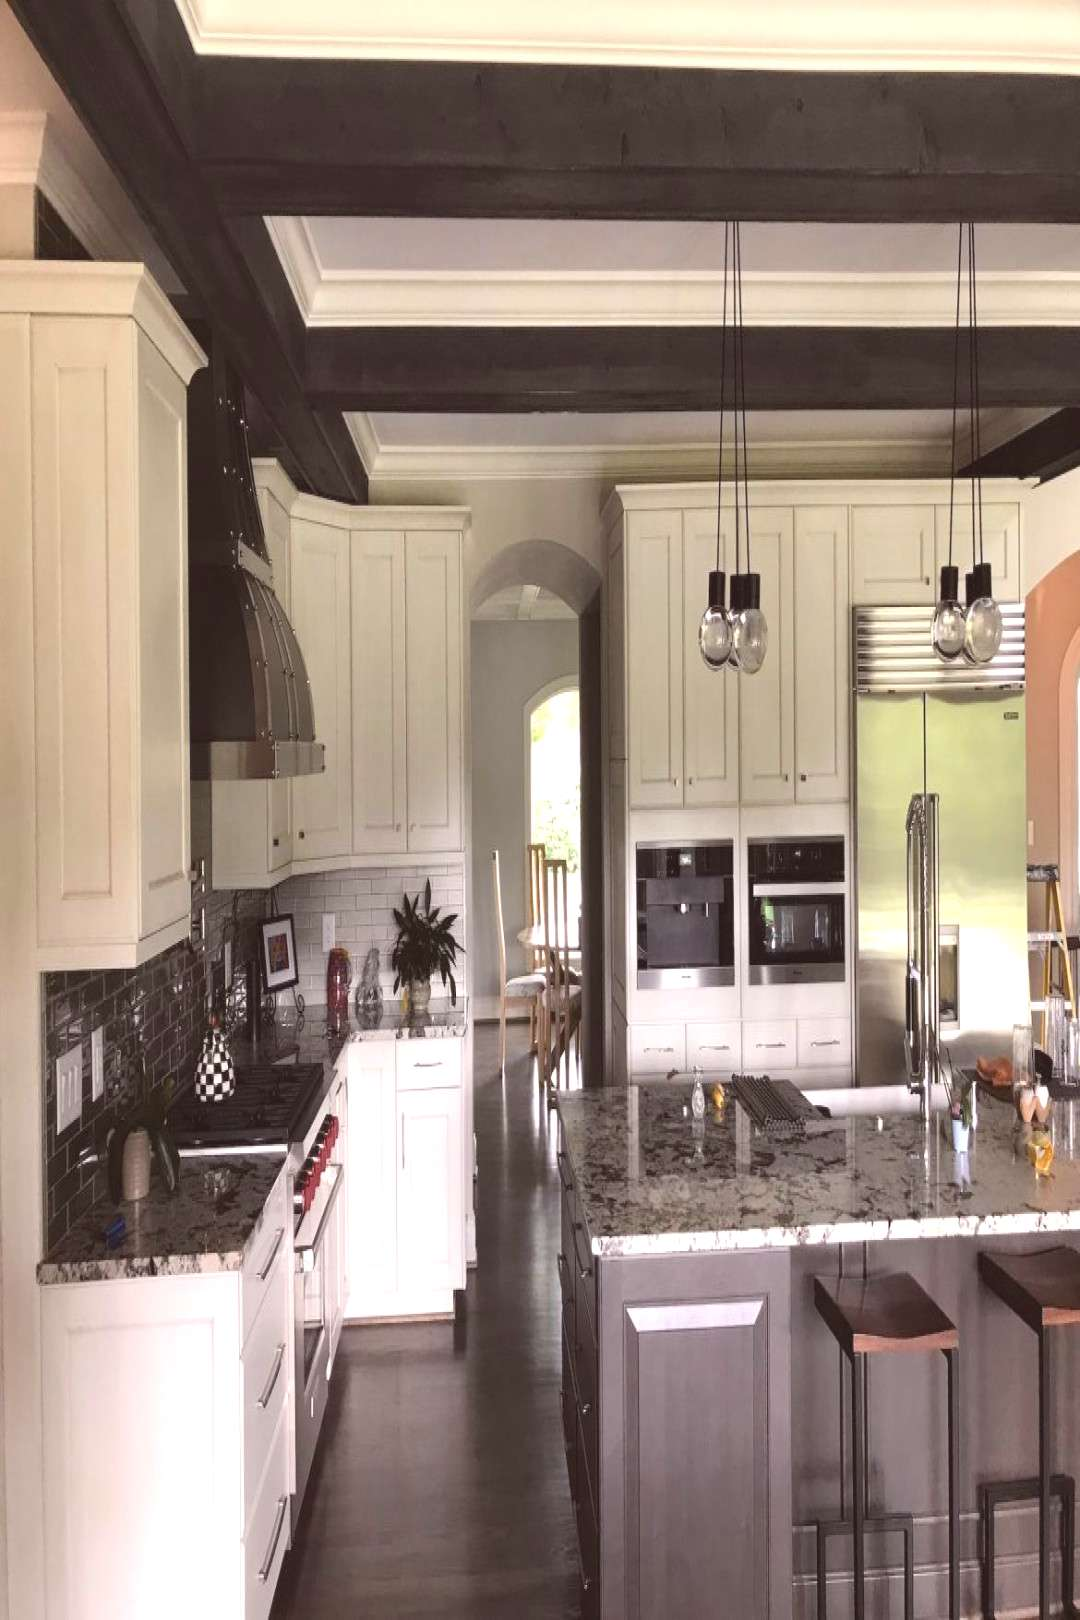 11 Ways How to Paint Kitchen Cabinets - Pa...#cabinets